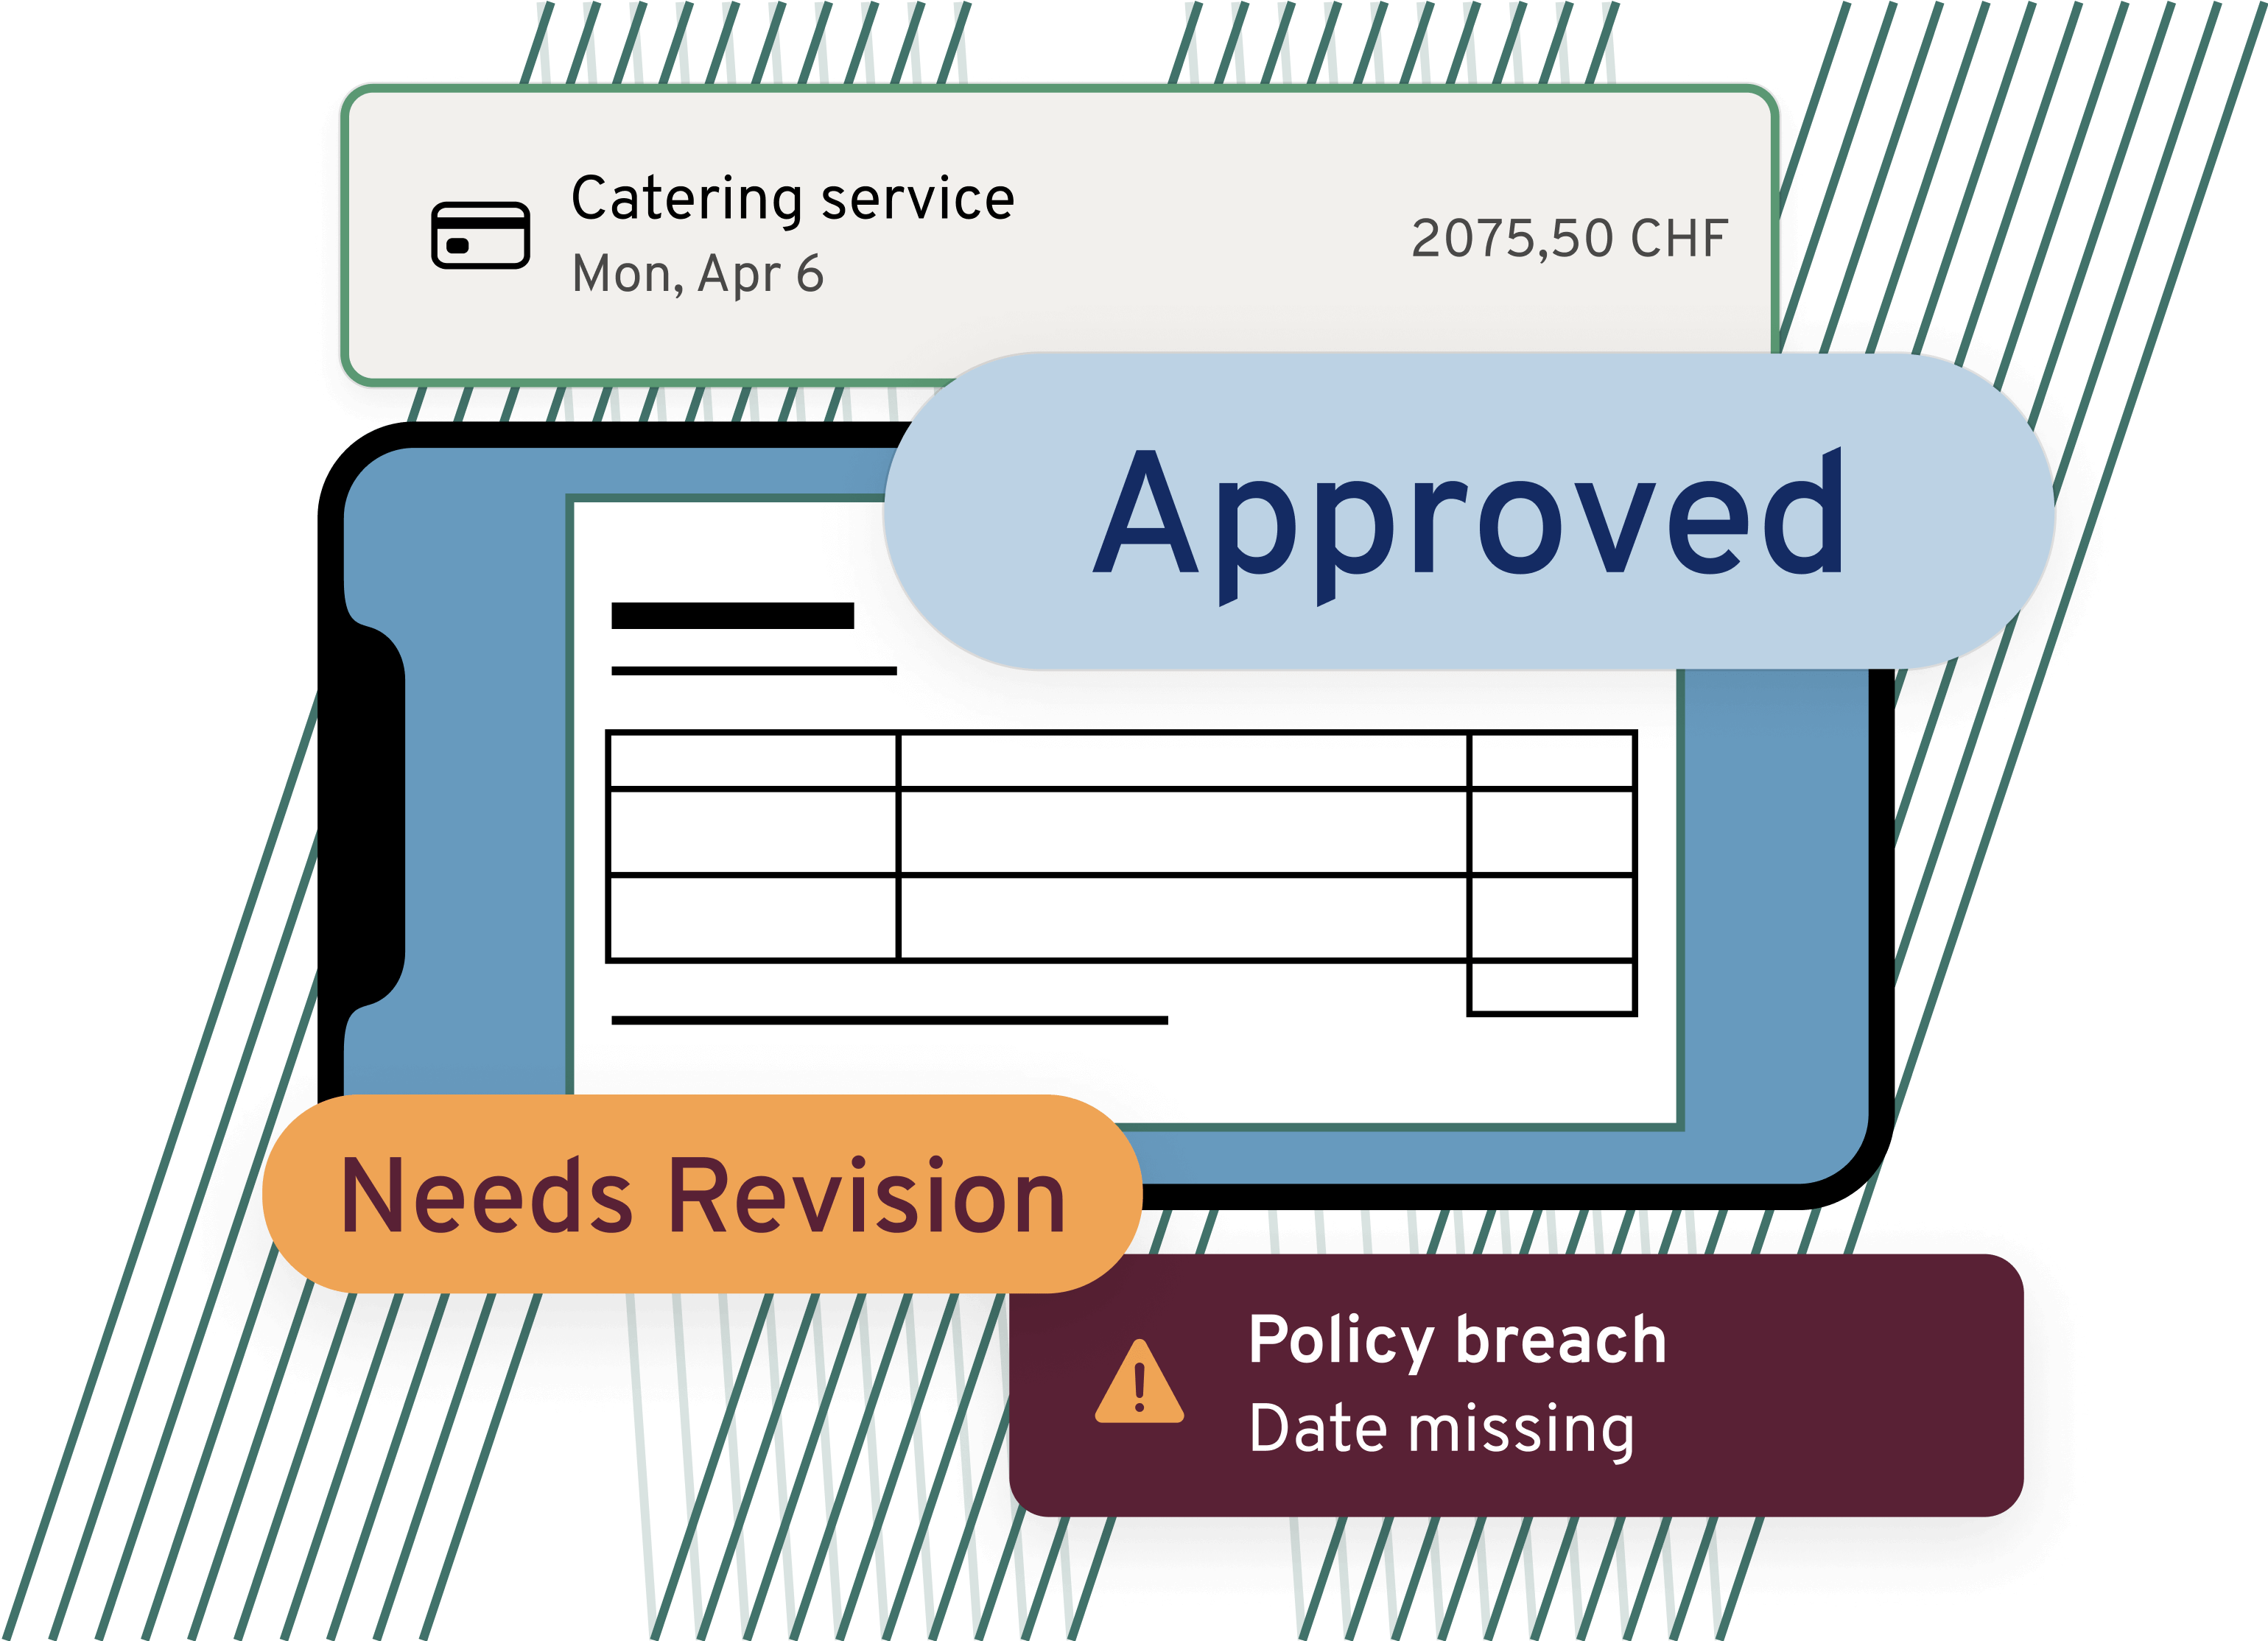 Invoice approval icon